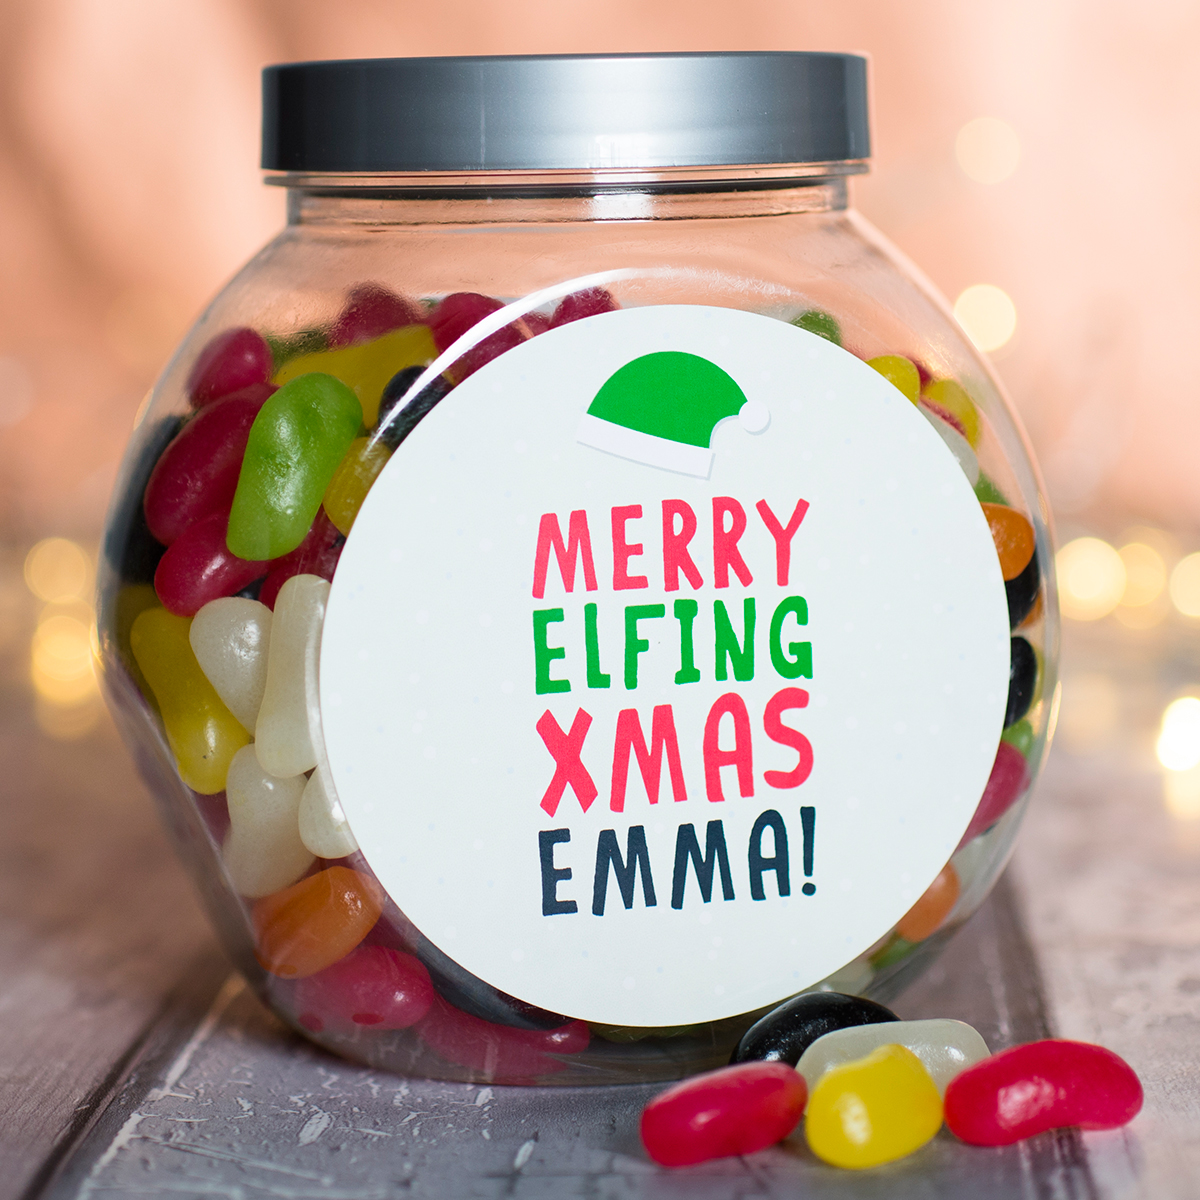 Personalised Jelly Beans Jar - Merry Elfing Xmas